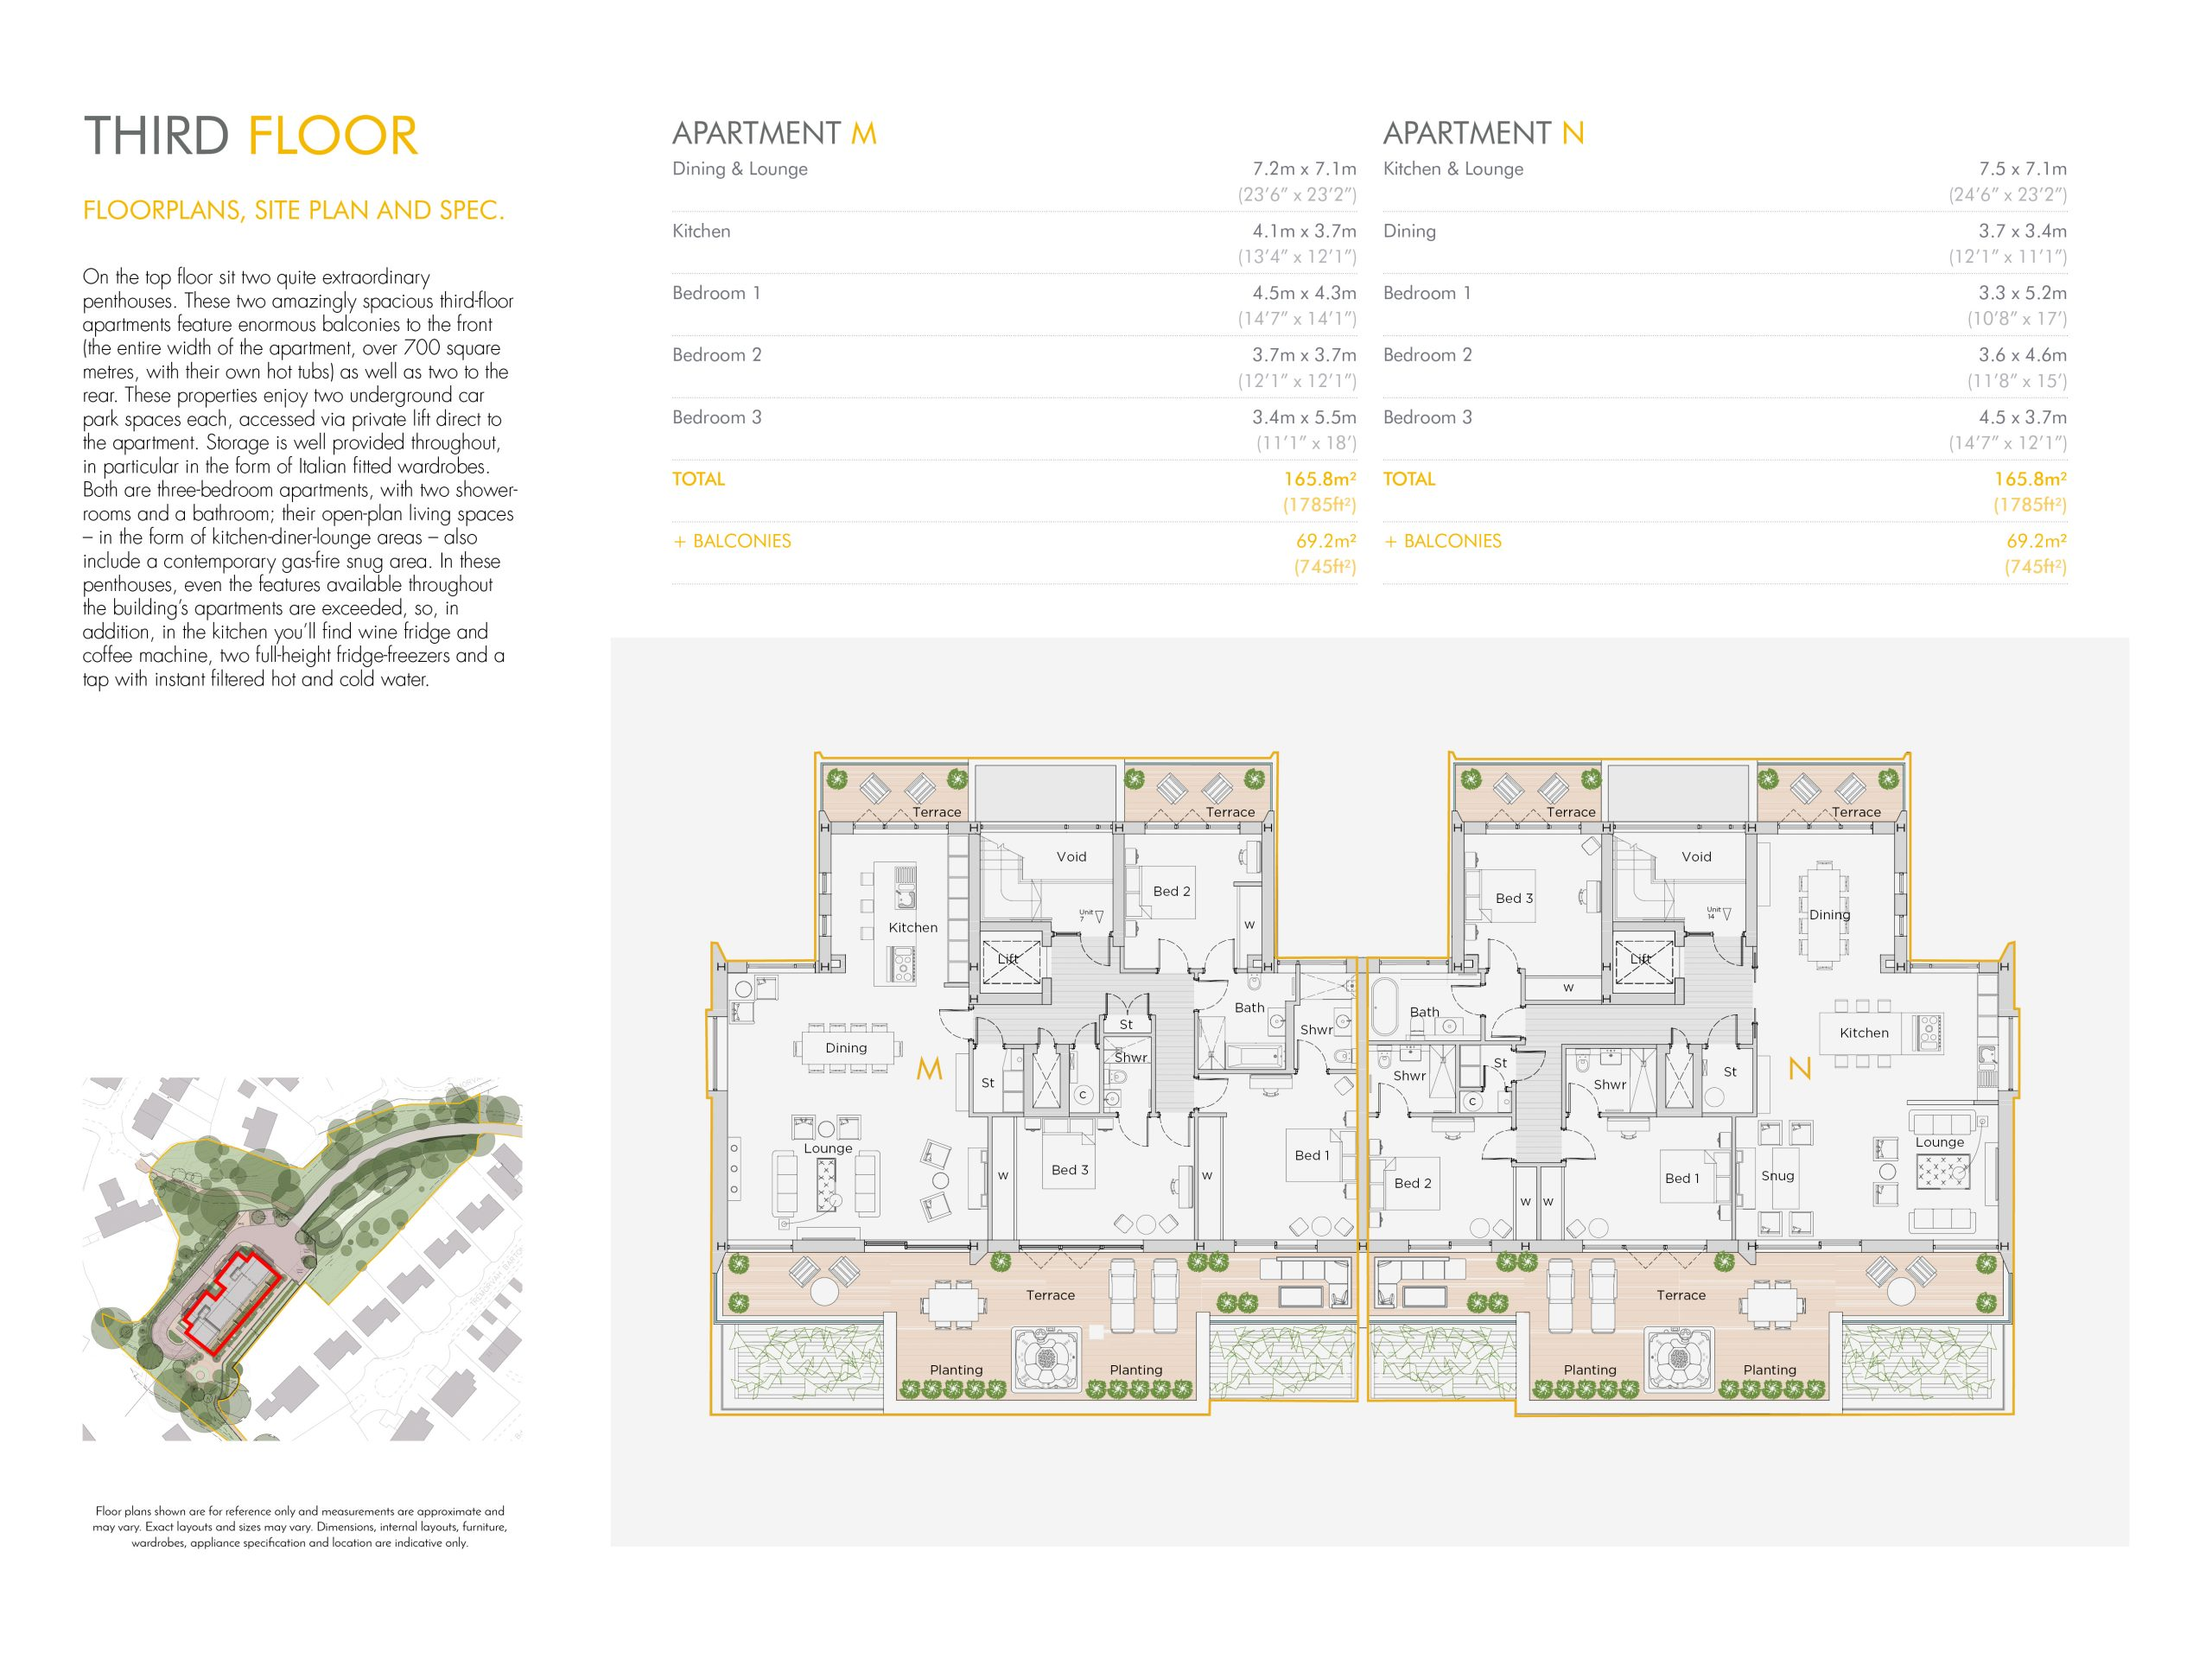 Stephens and stephens developers The Hideaway Truro cornwall Floorplans 1200x900 third floor